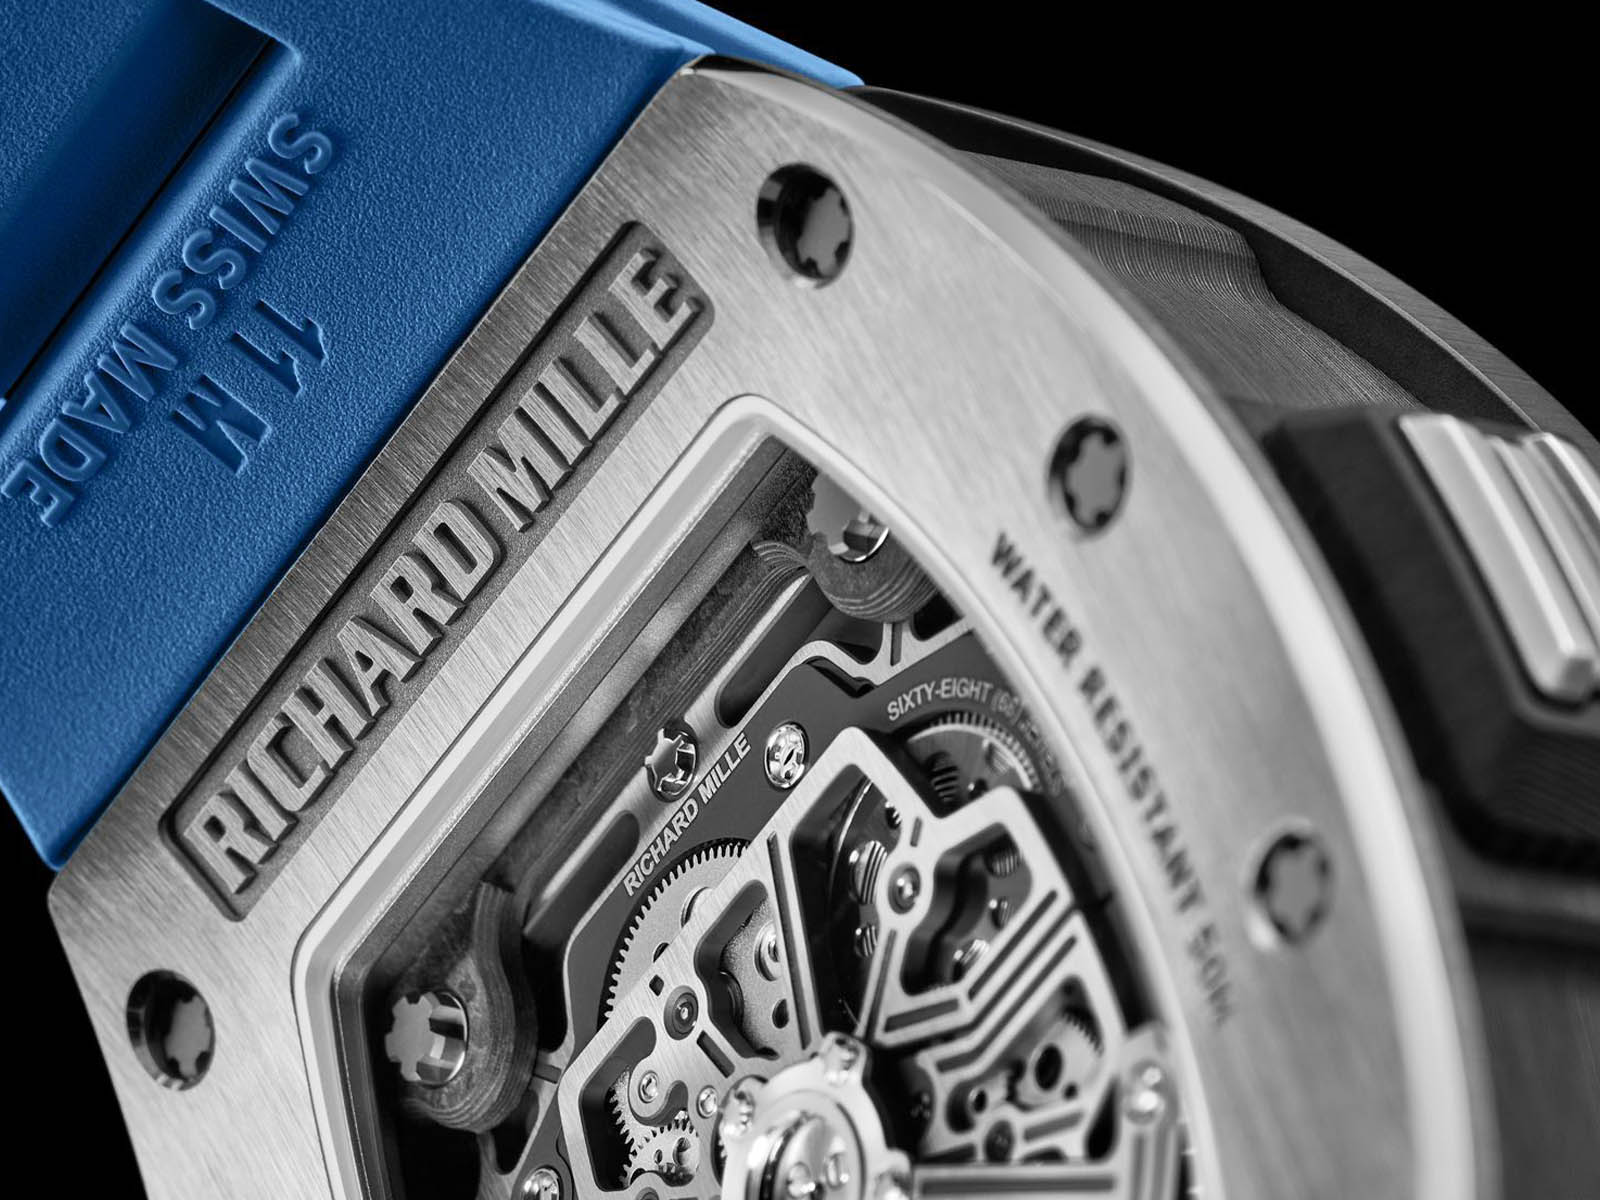 rm-11-05-richard-mille-automatic-flyback-chronograph-gmt-cermet-9.jpg